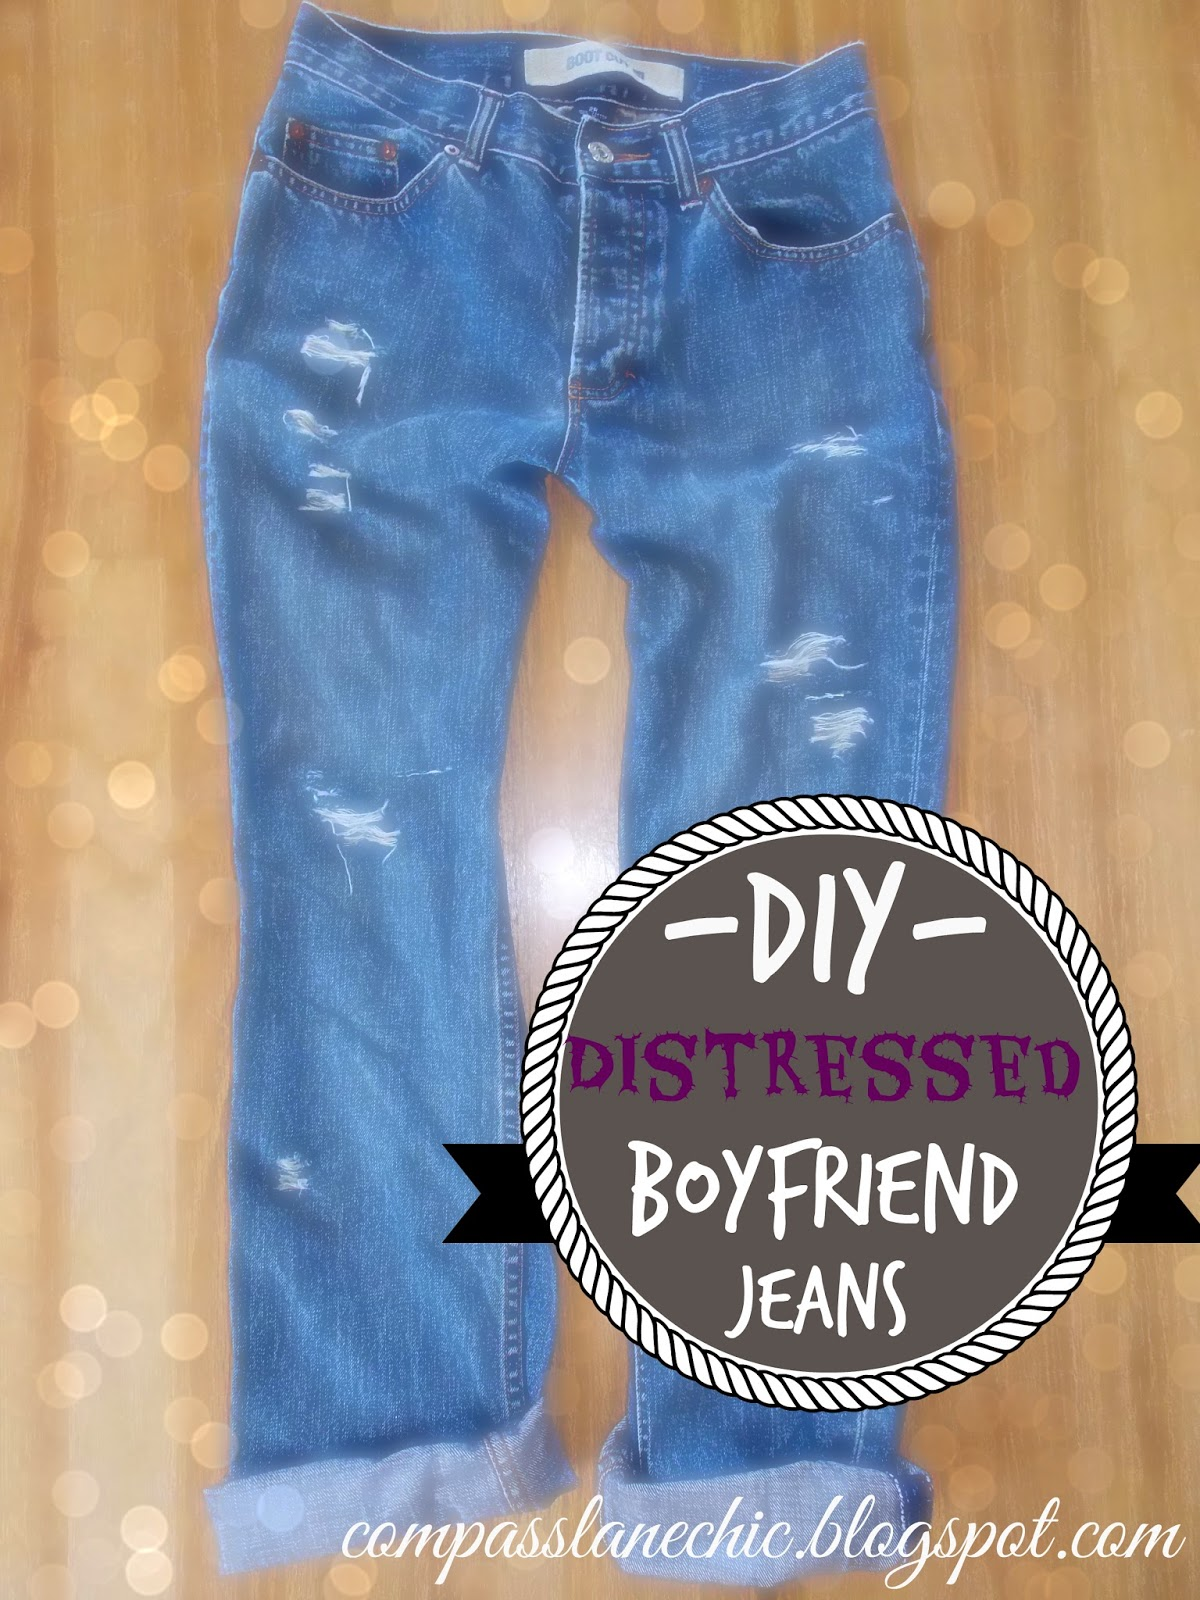 {DIY} Distressed Boyfriend Jeans | Compass Lane Chic Diy Distressed Boyfriend Jeans